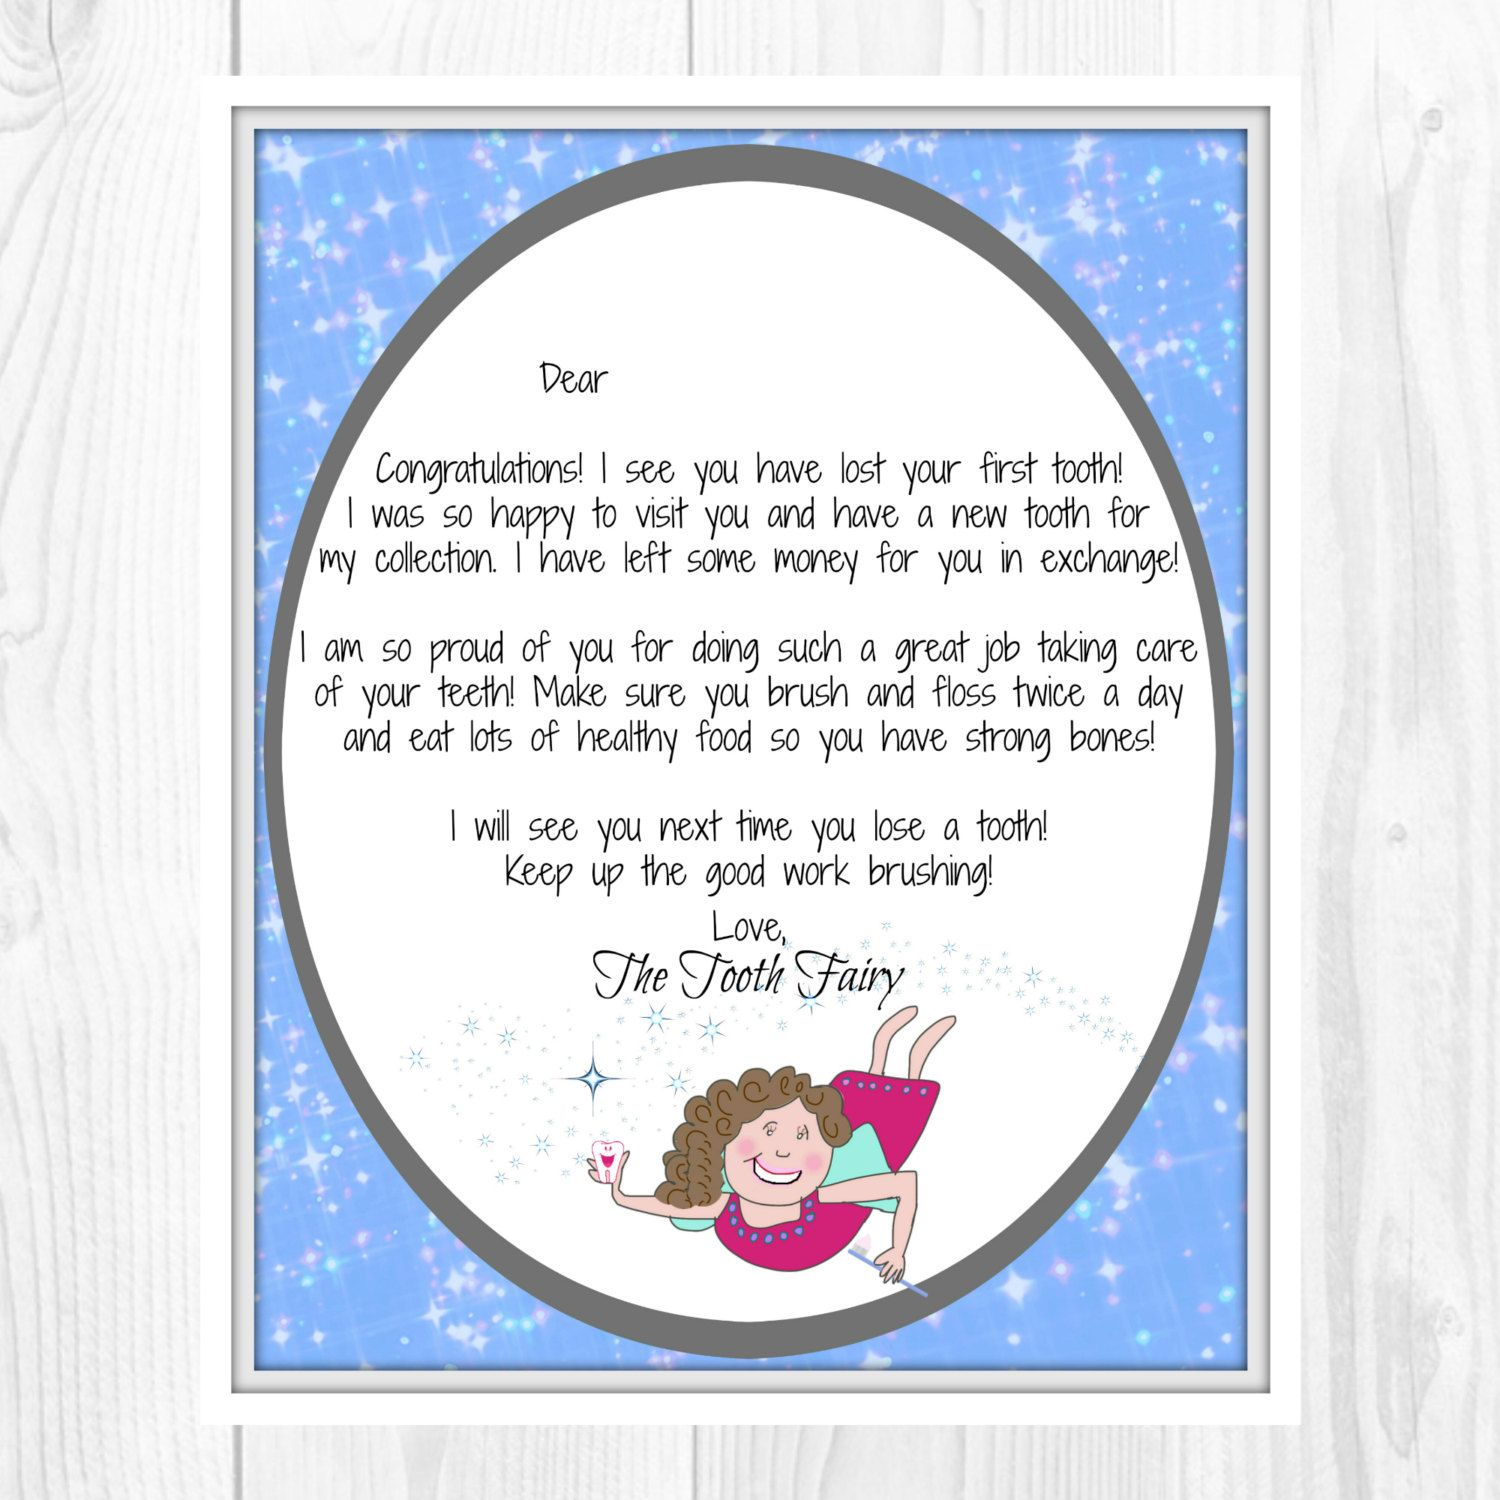 Tooth Fairy Letter First Tooth Aildoc Productoseb Co